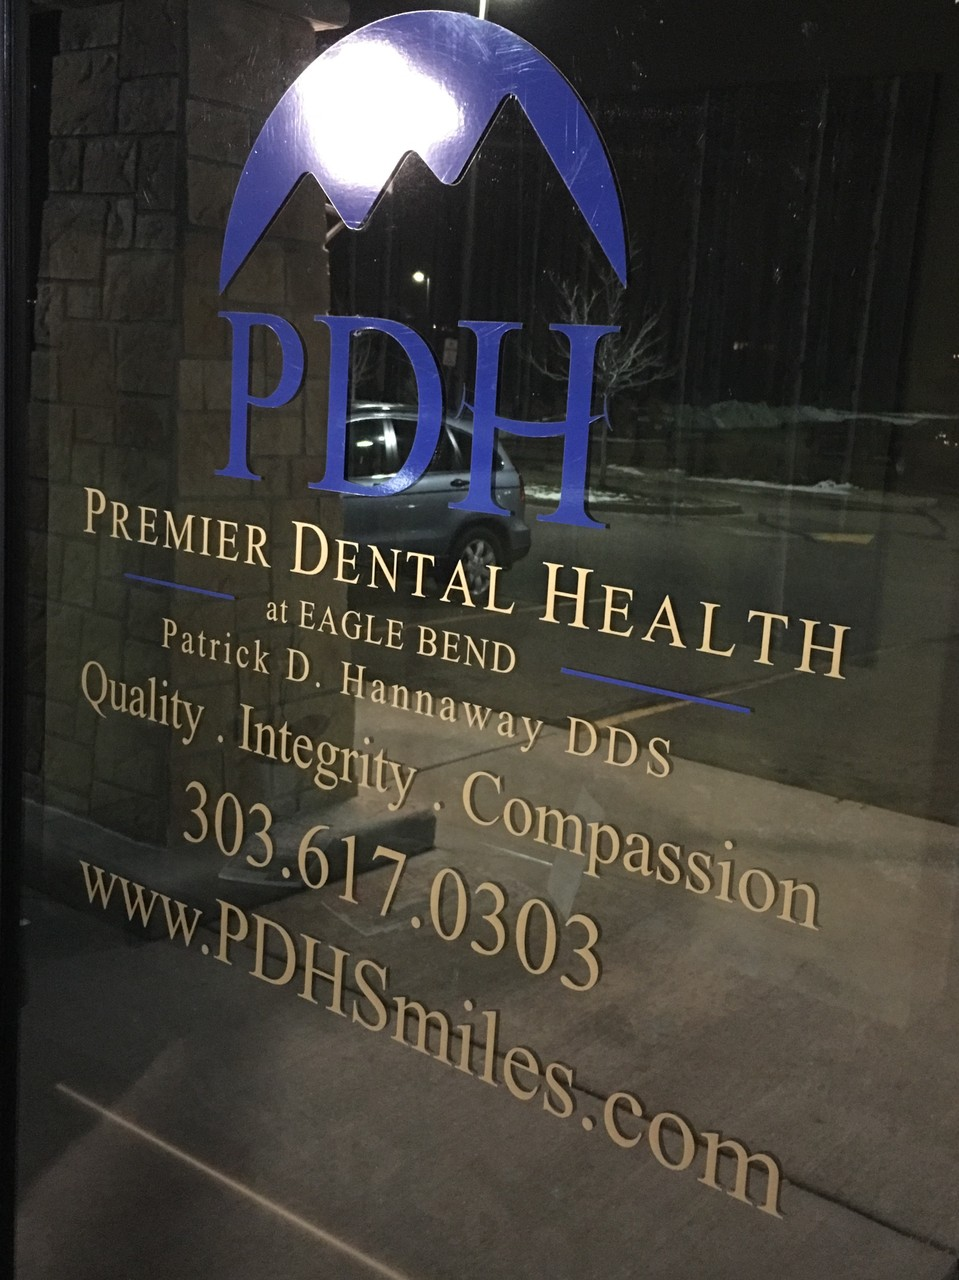 Welcome to Premier Dental Health at Eagle Bend!